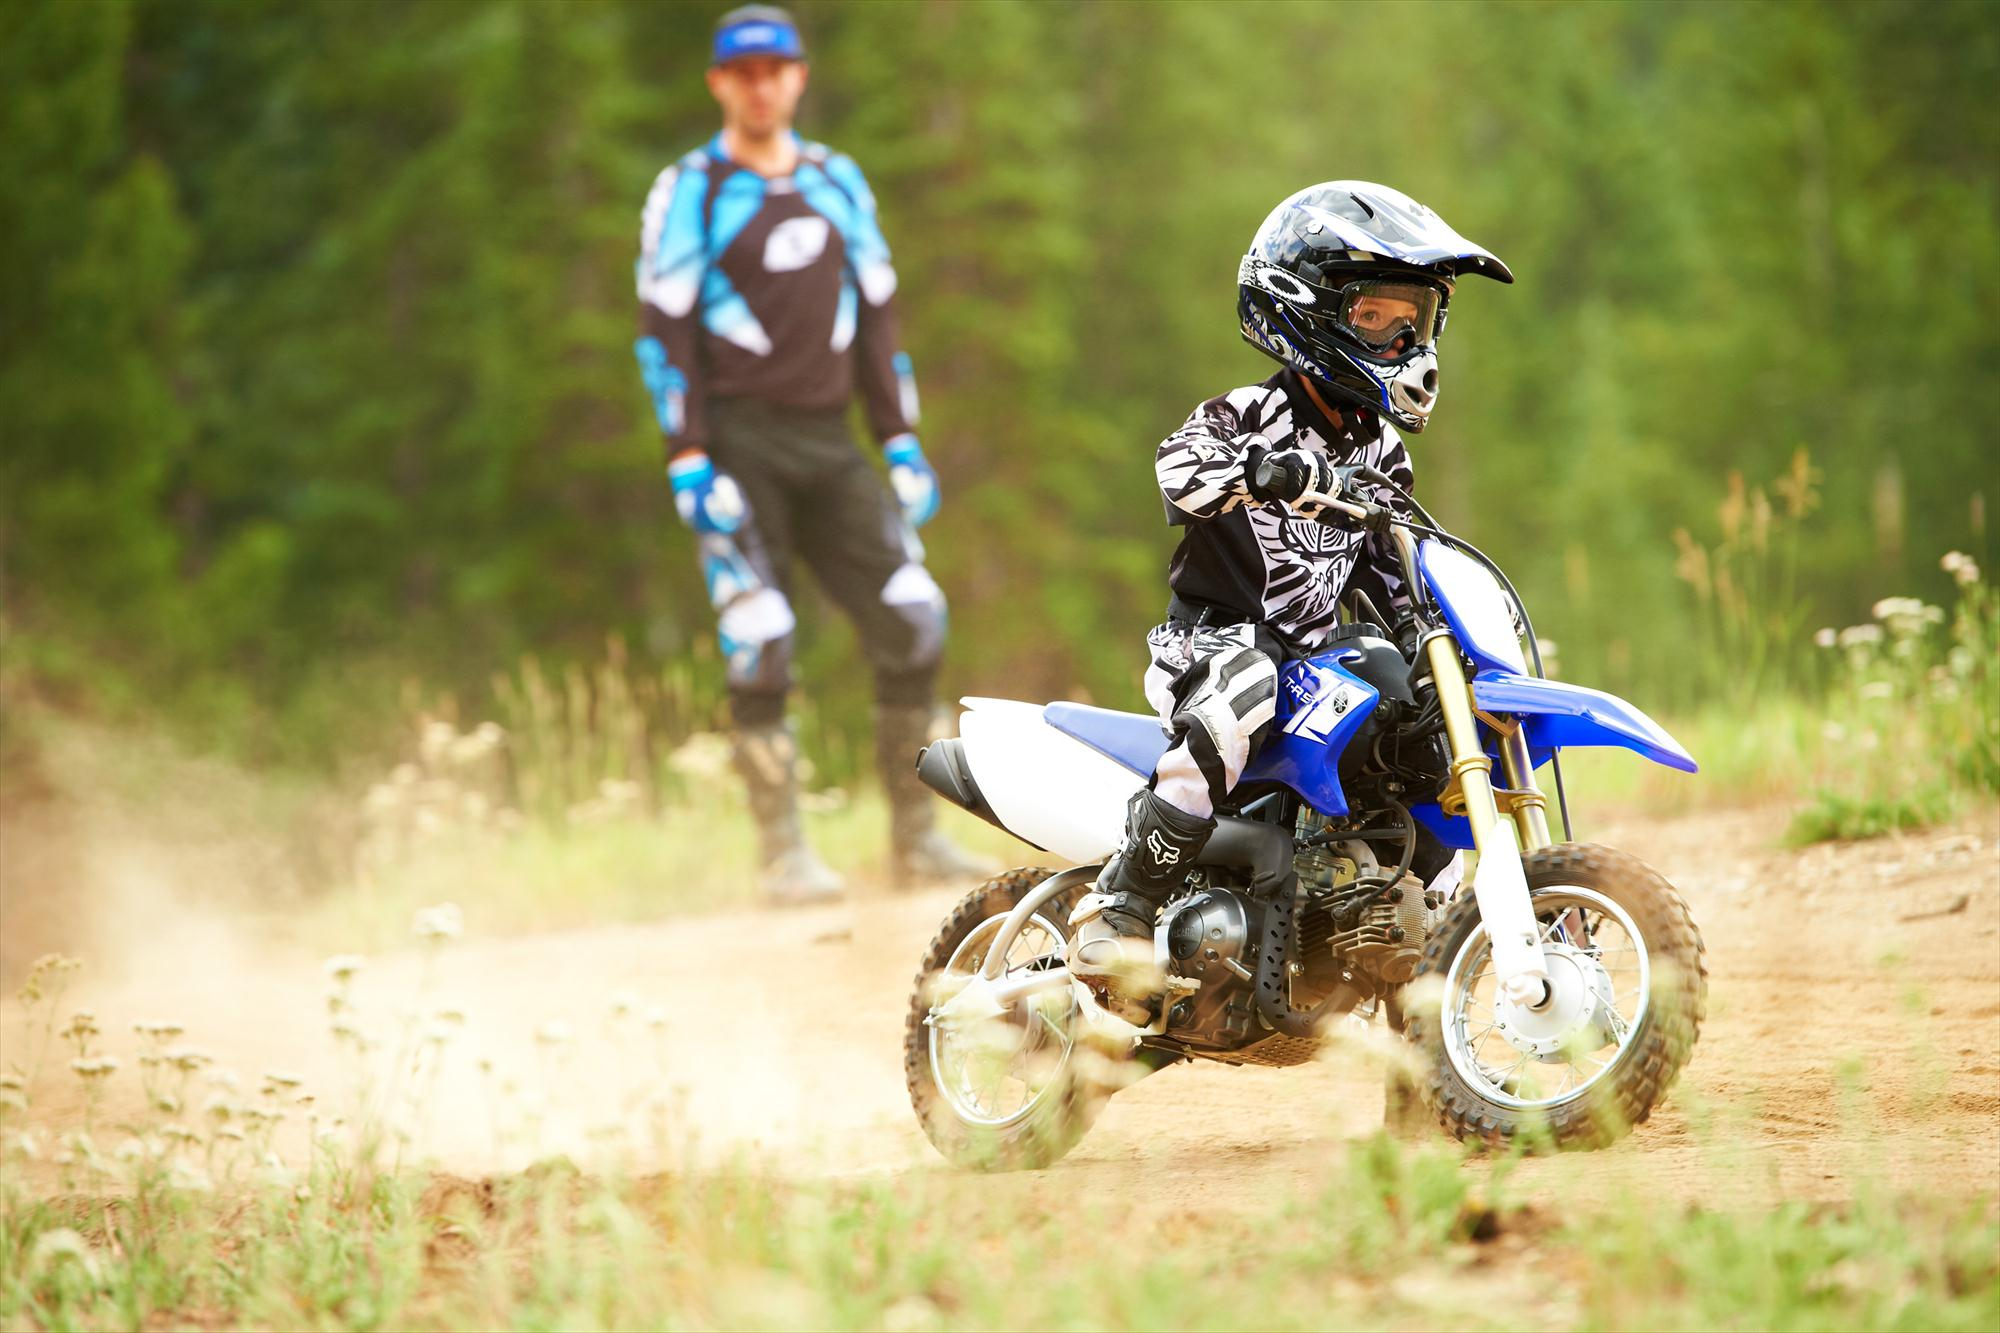 Kids Motocross Gear & Clothing At FreestyleXtreme we make it our mission to provide you with the best quality gear at prices you will love. Shop our large selection of kid's motocross clothing and gear to find the best brands you can rely on to keep your kids safe.